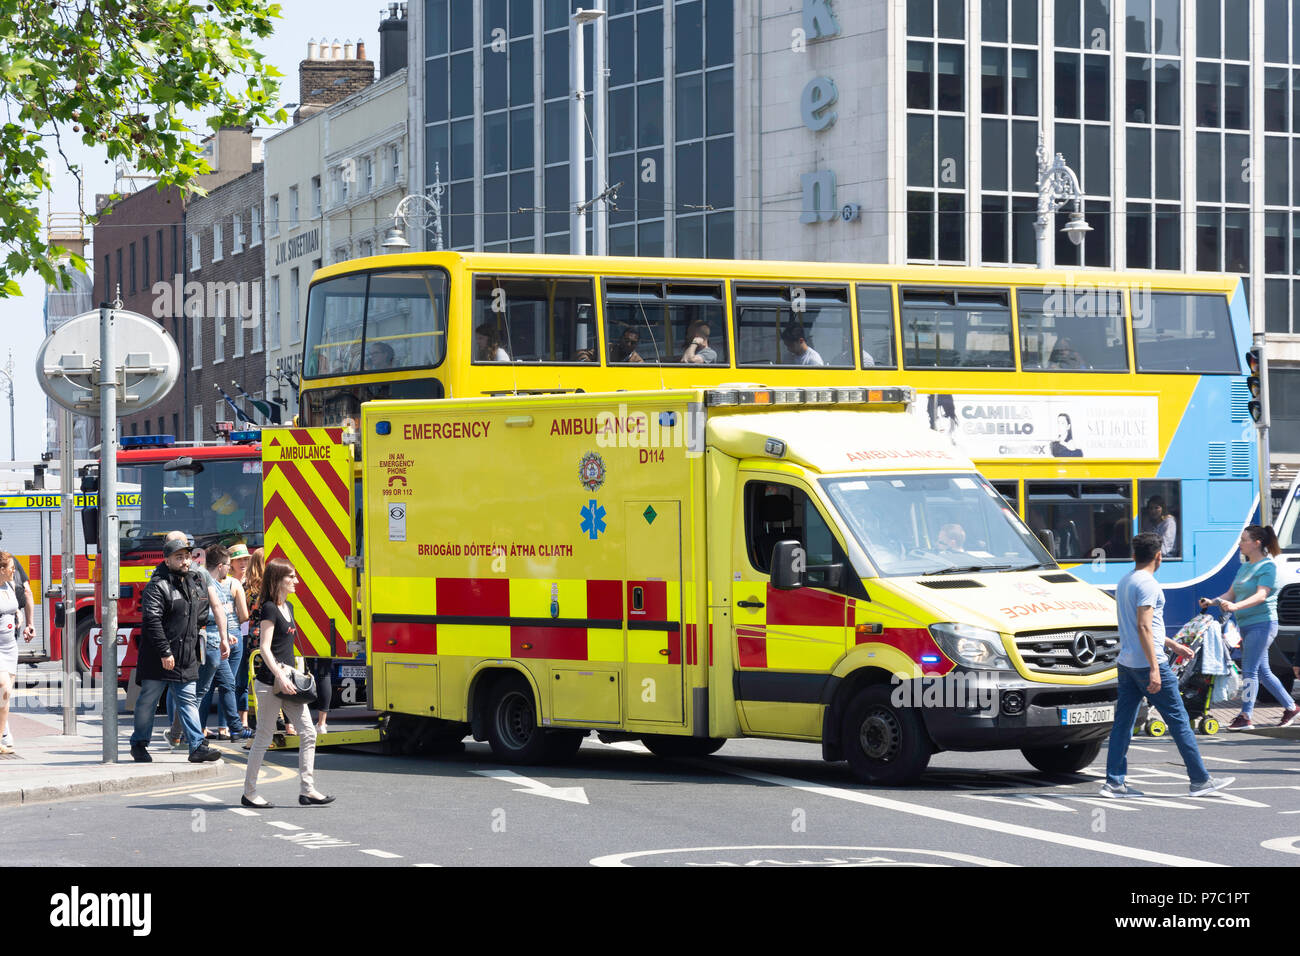 Emergency services ambulance on call, Westmoreland Street, Temple Bar, Dublin, Leinster Province, Republic of Ireland - Stock Image